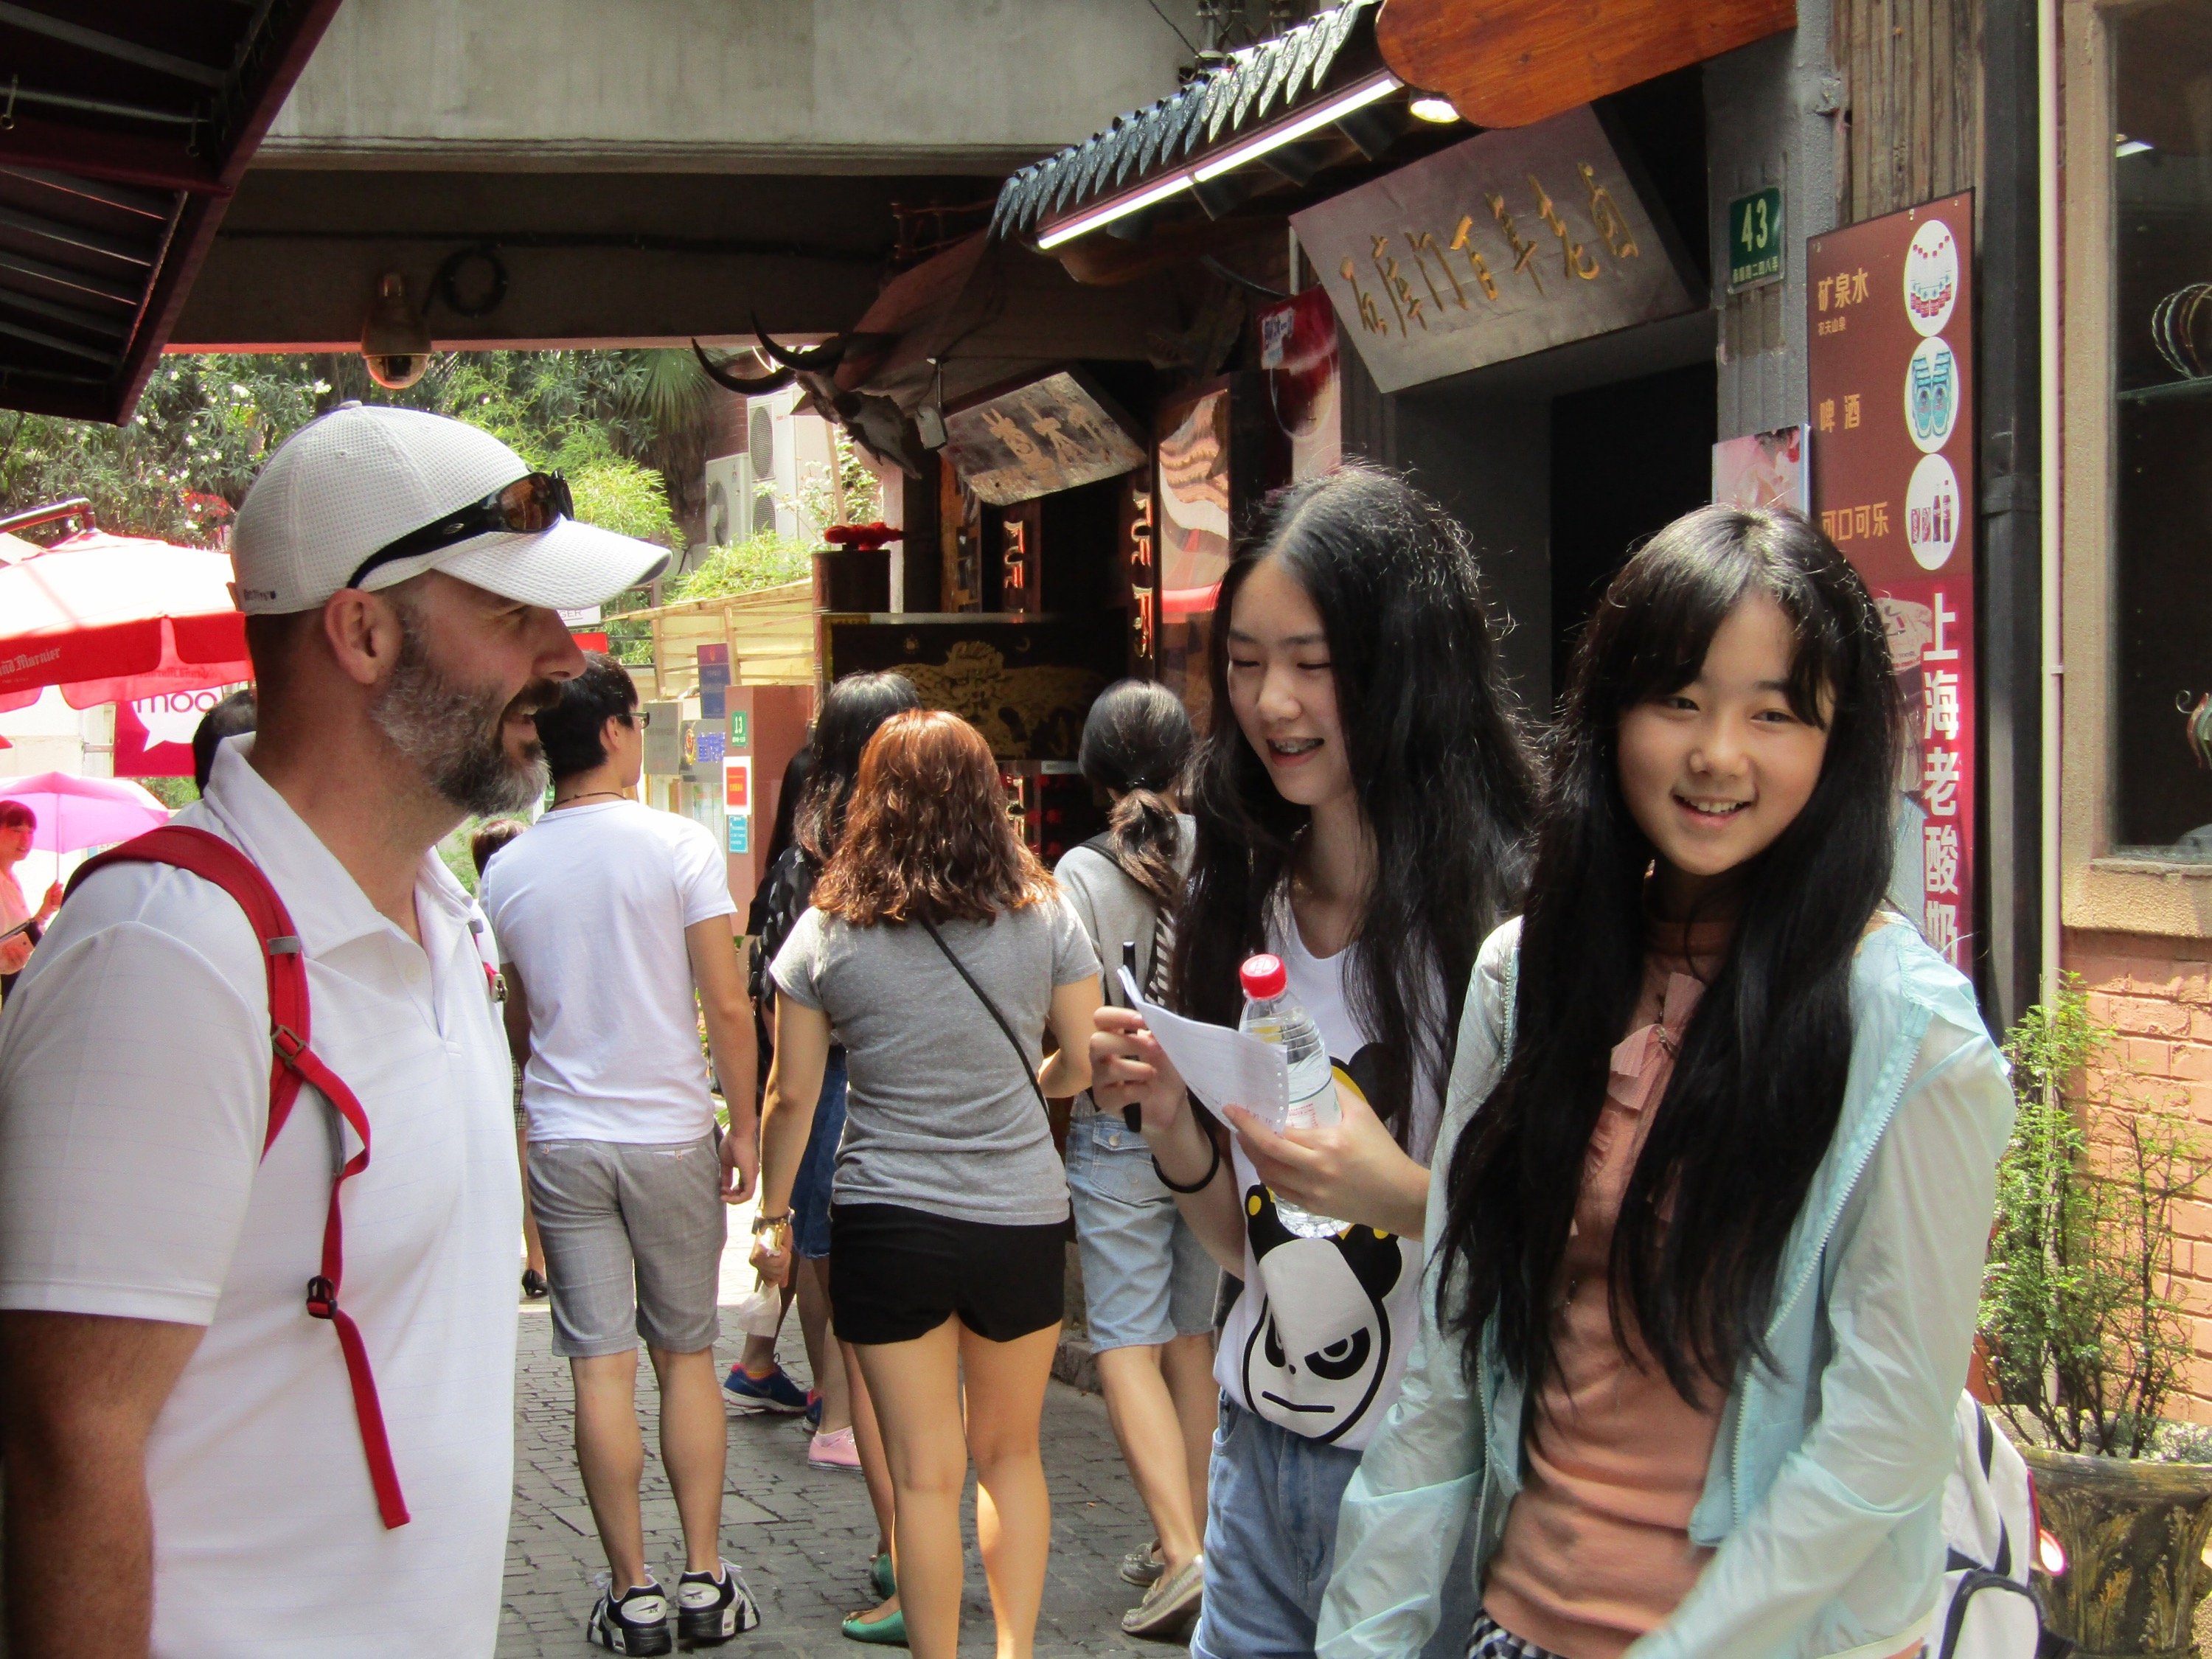 Throughout our trip, we were frequently stopped by students looking to fulfill a school assignment. In the French Concession, these girls asked questions about my view of Shanghai and whether the education system was better in the U.S. or China. Every exchange was recorded on video, so we'll be making an appearance in a Chinese classroom before long!